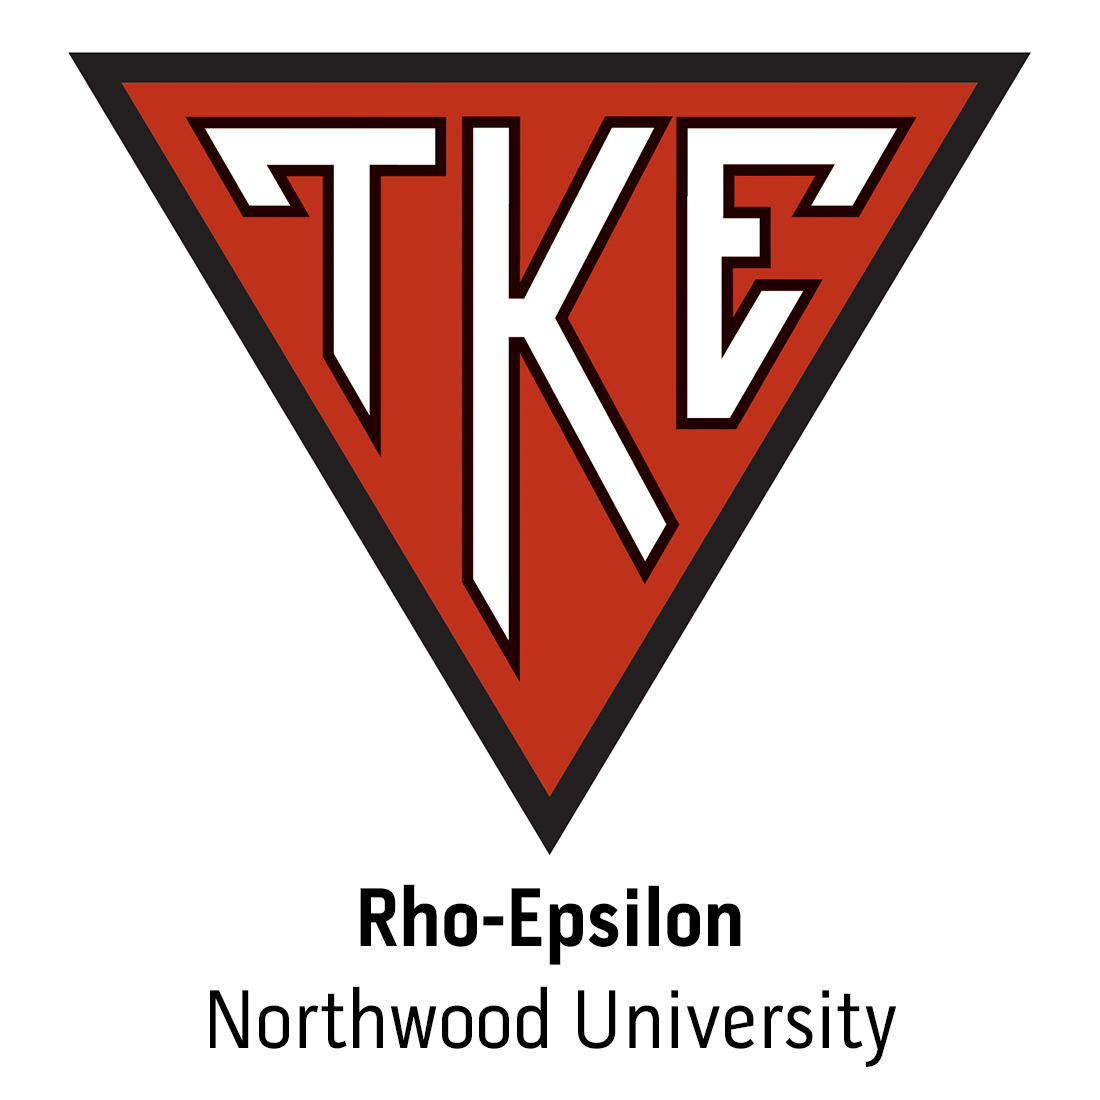 Rho-Epsilon Chapter at Northwood University